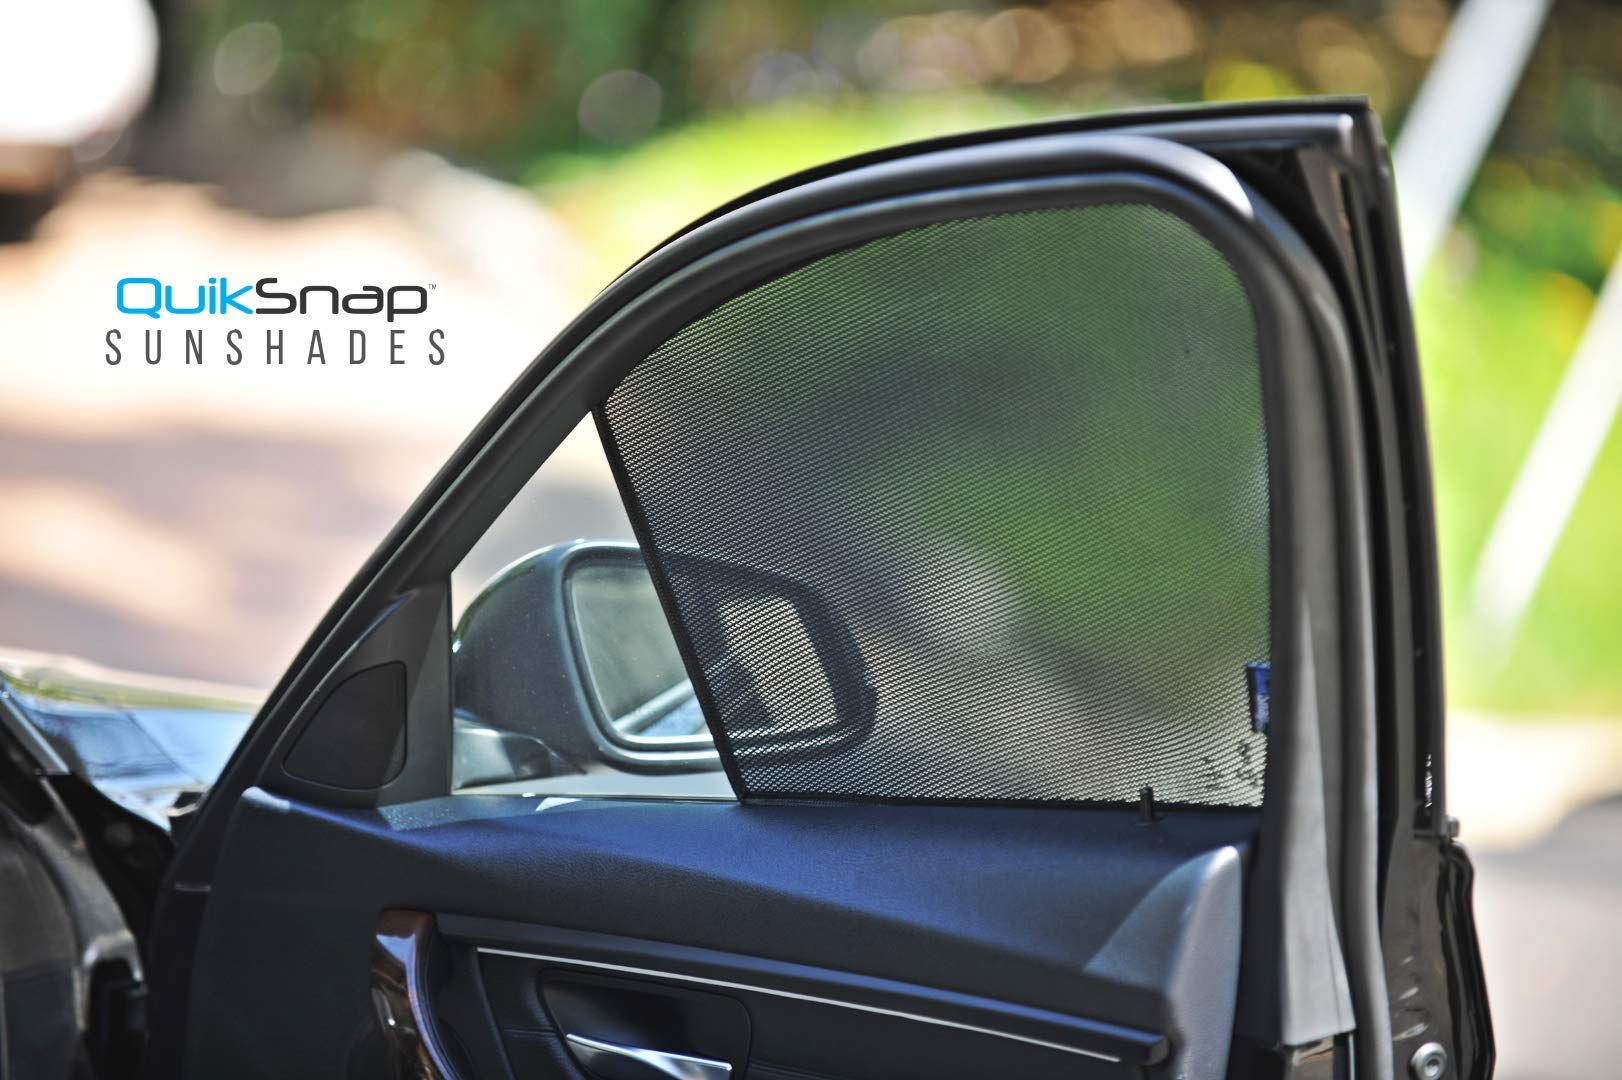 QuikSnap sunshades - Custom Side Window sunshades (Set of 4) (Compatible with Toyota Avalon 2013-2018)